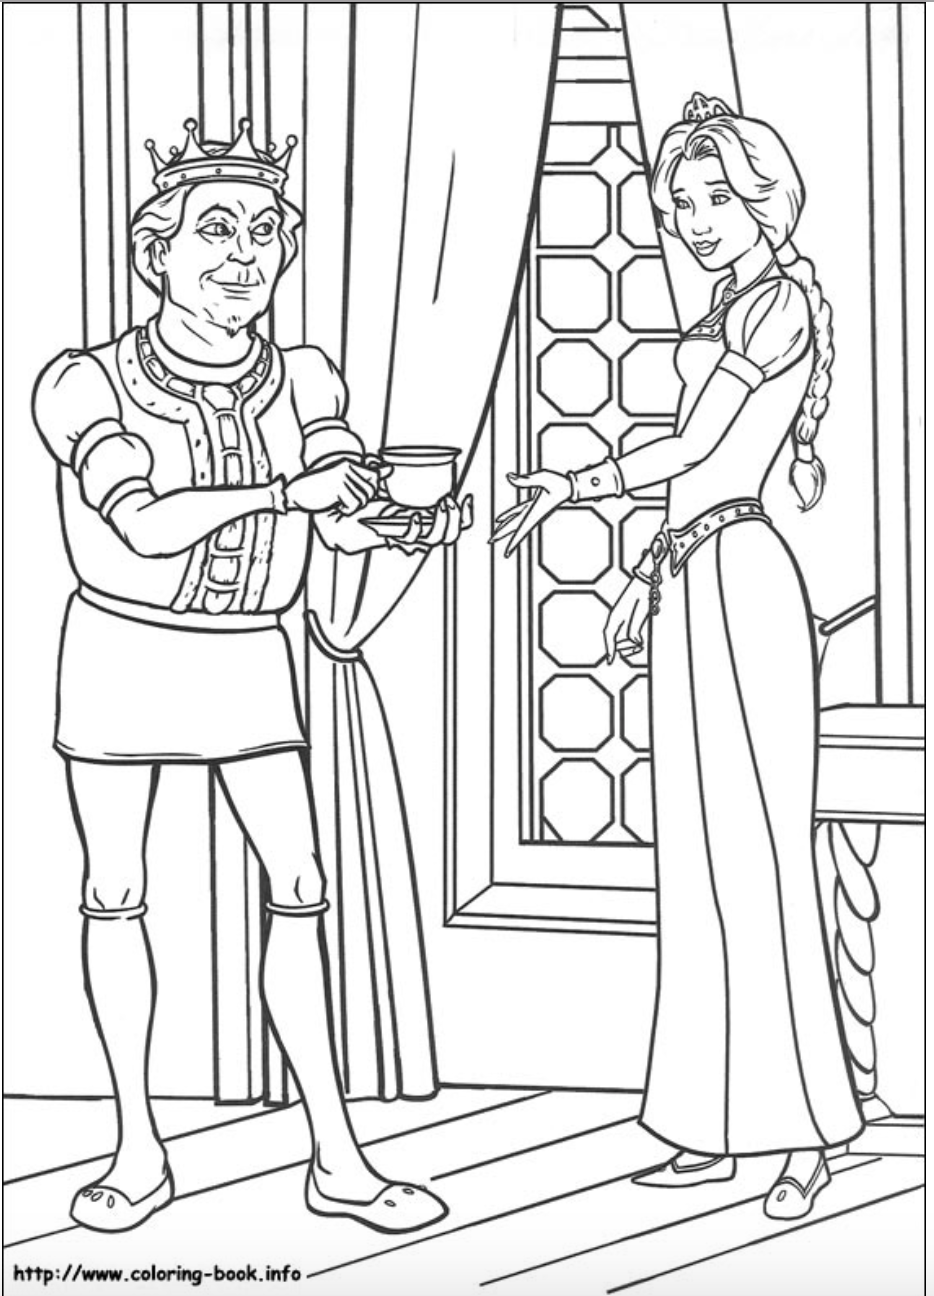 Princess Fiona and her Father King Harold coloring page from Shrek